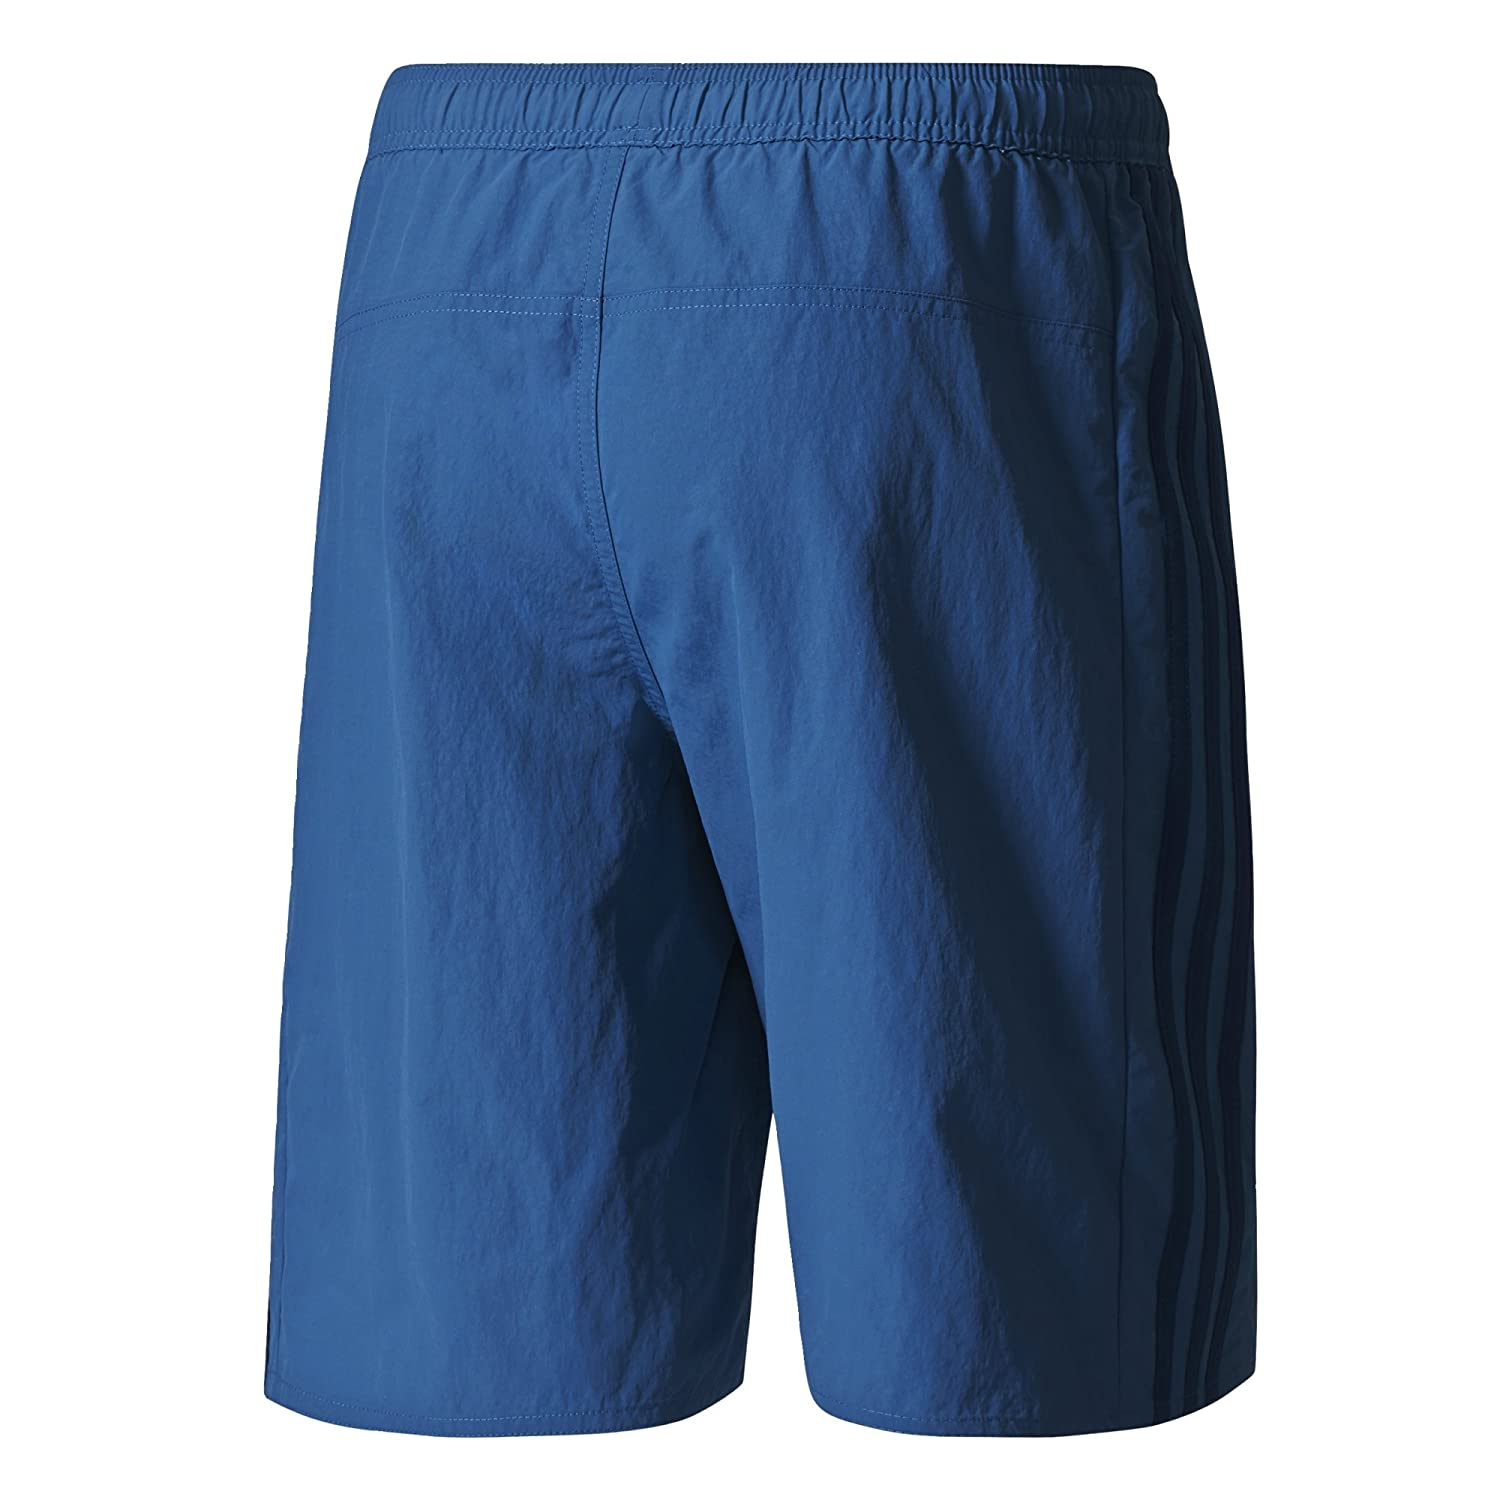 852cceda40 Adidas Boys 3-Stripes Classic Middle Length Swimming Shorts.: Amazon.co.uk:  Sports & Outdoors